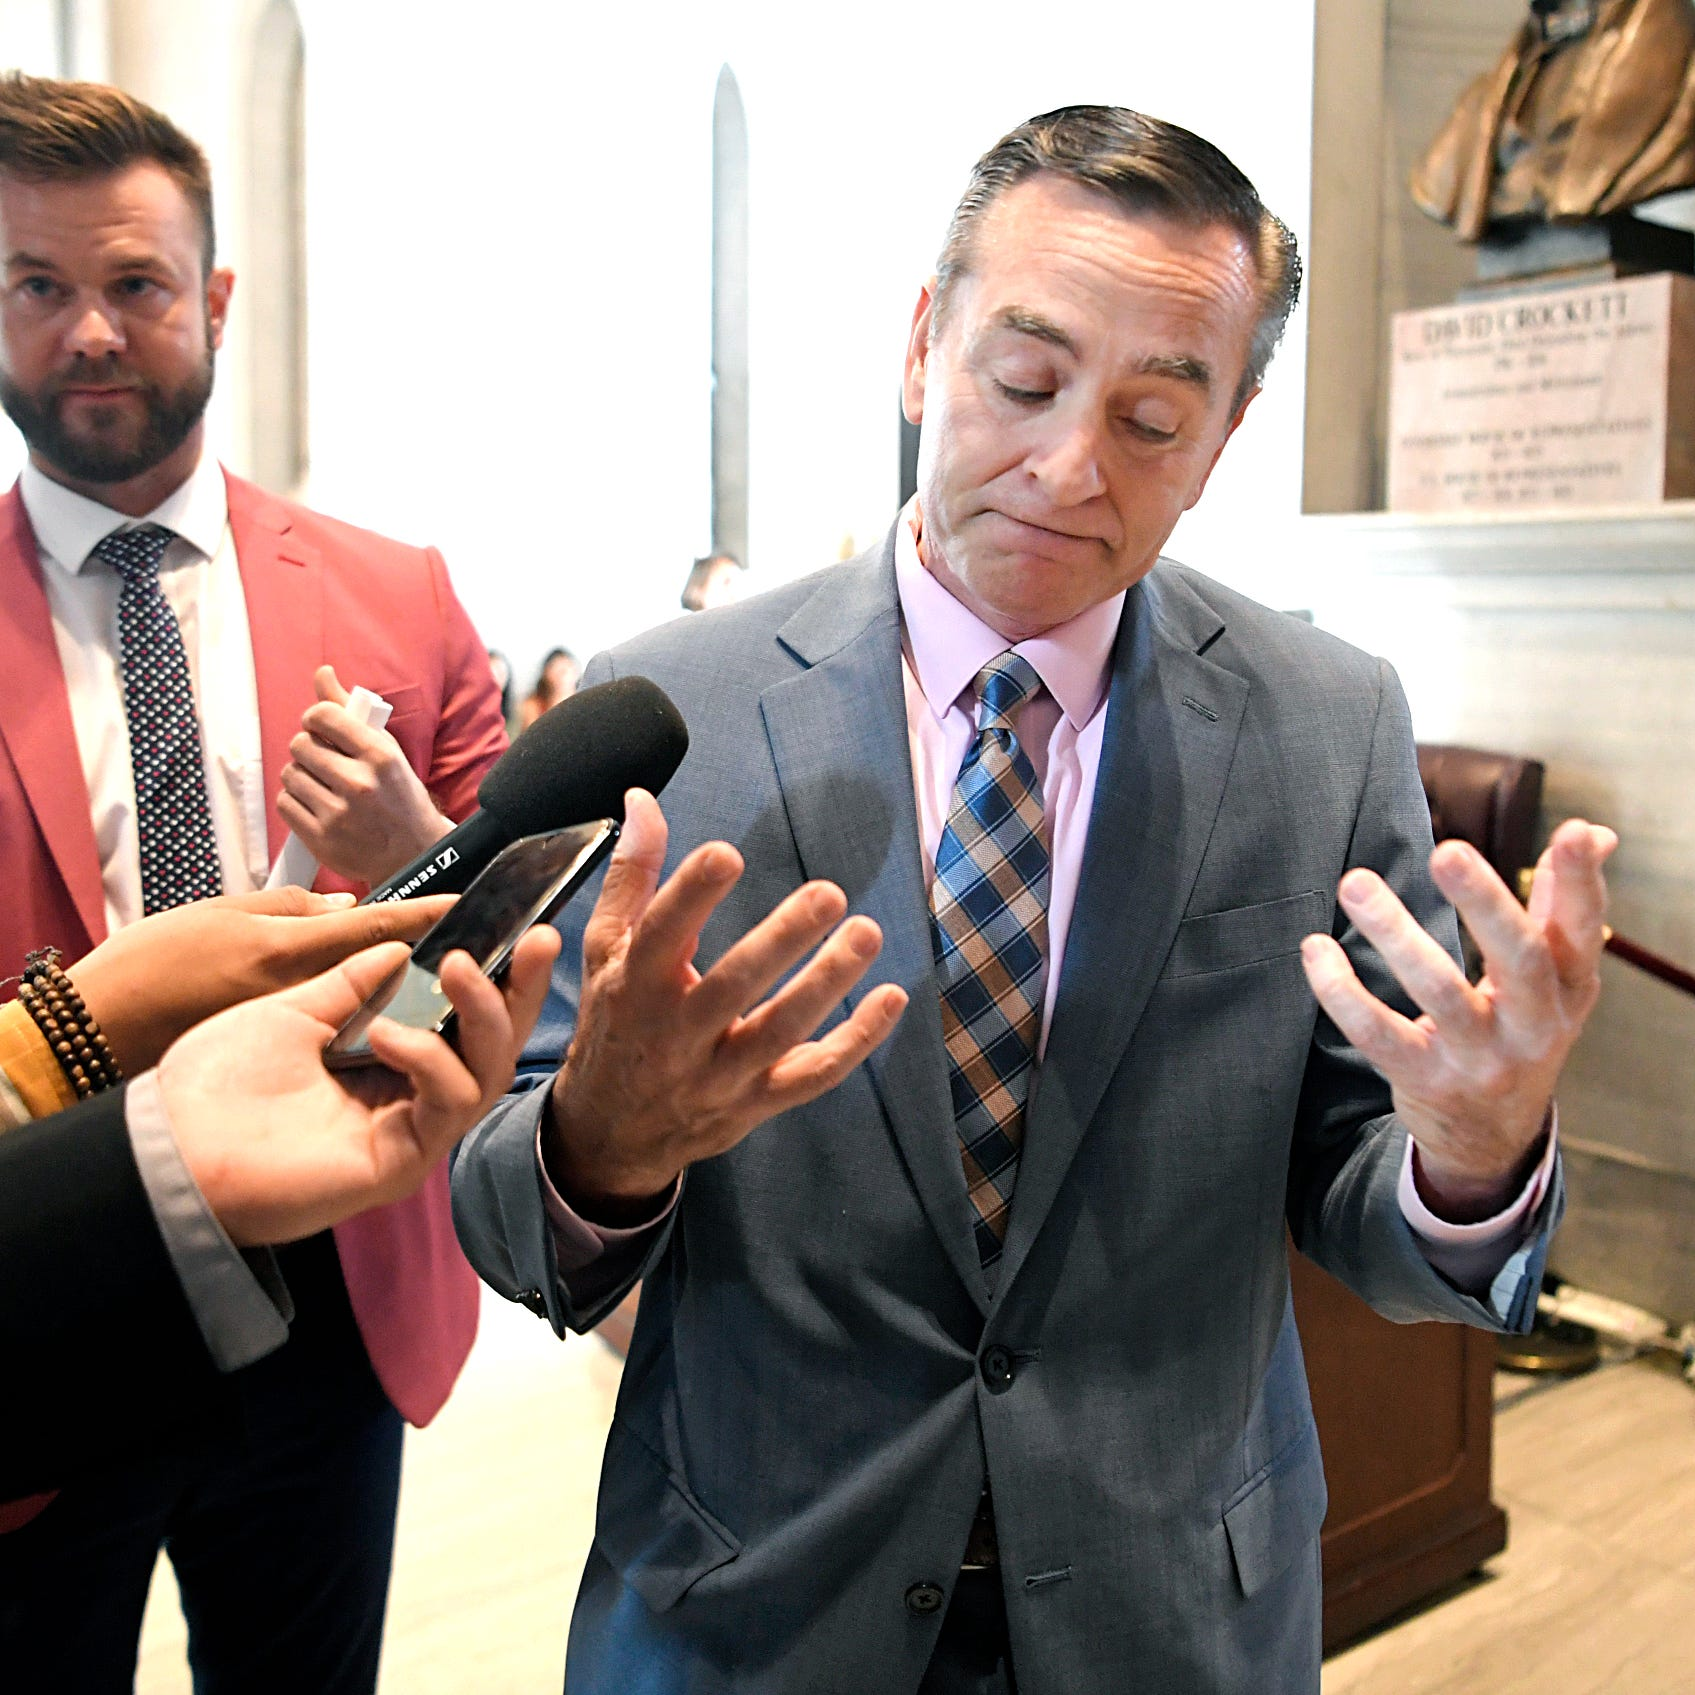 Rep. Glen Casada, Cade Cothren sent sexually explicit text messages about women